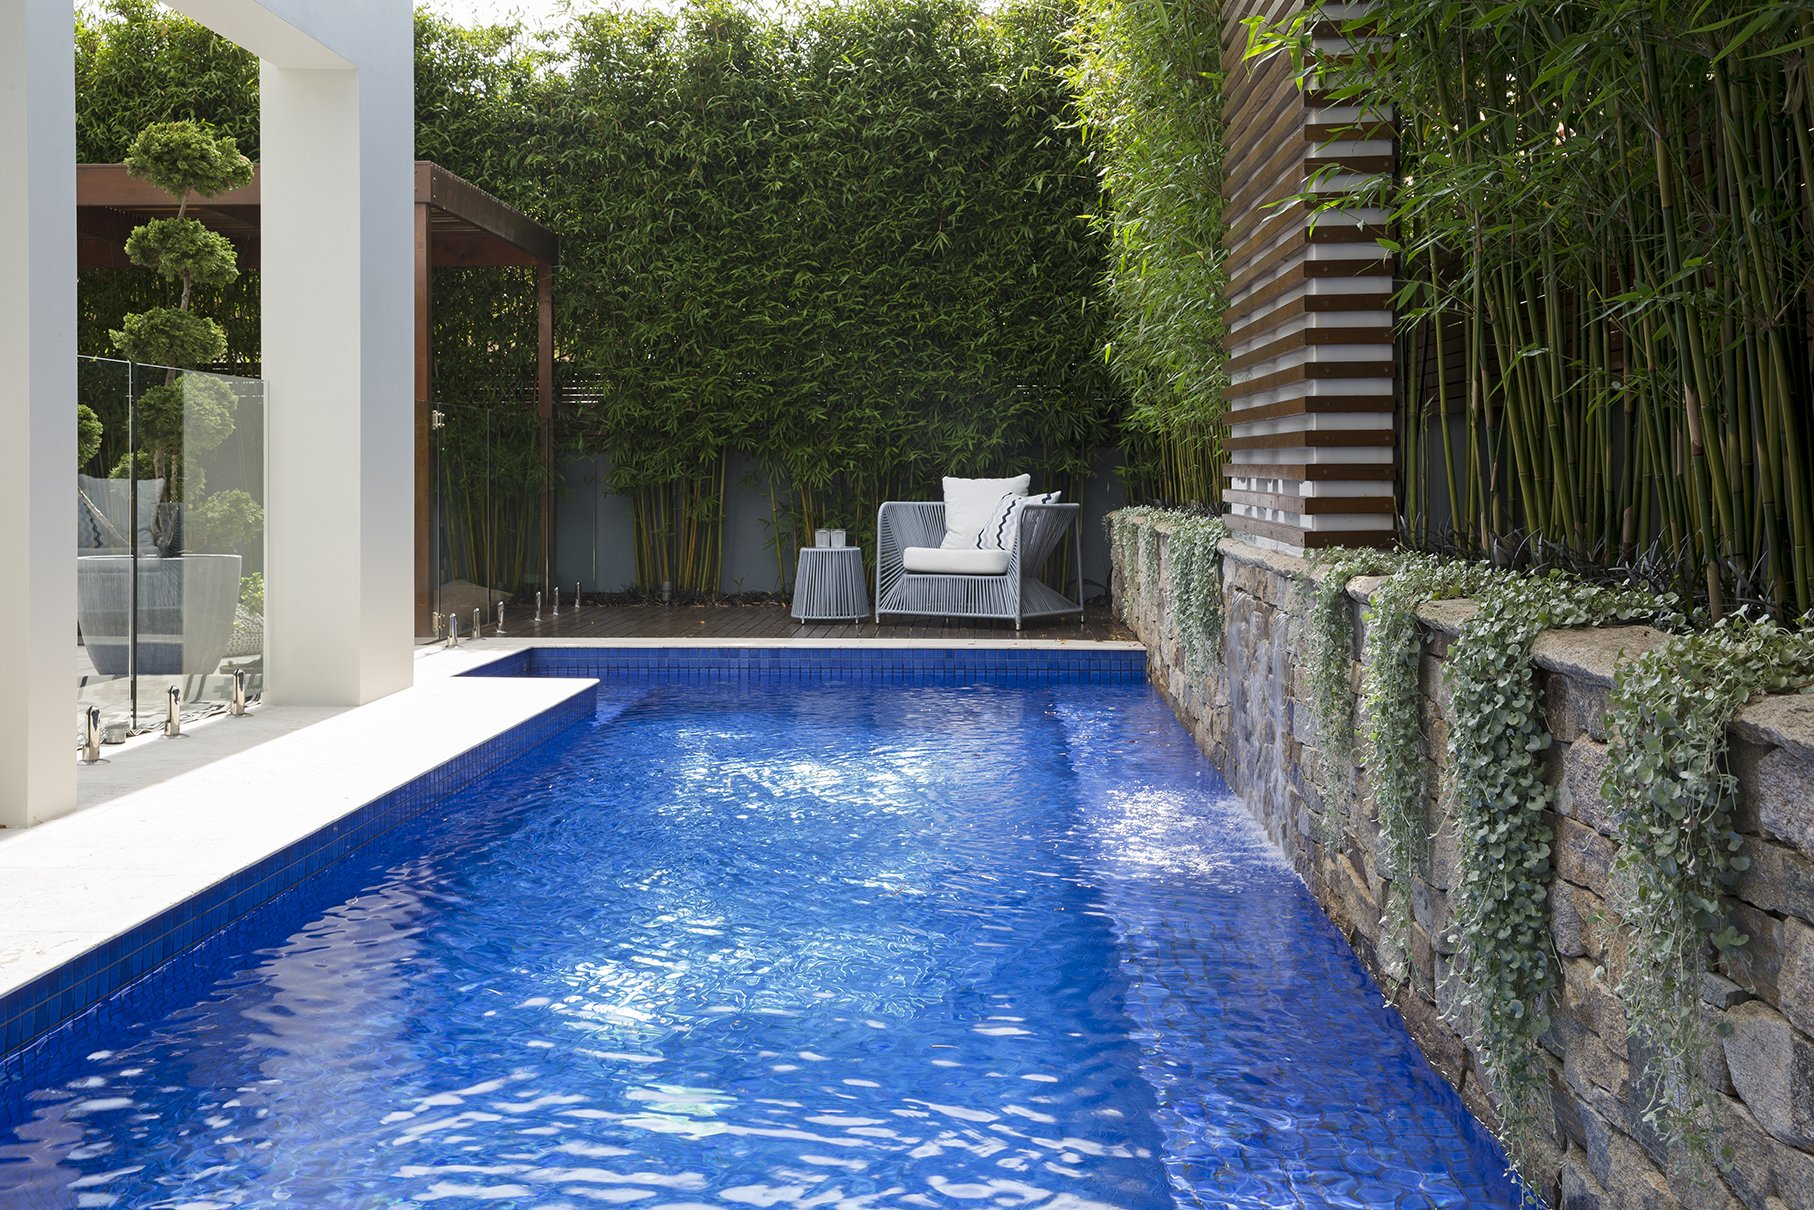 In ground pool design with timber decking